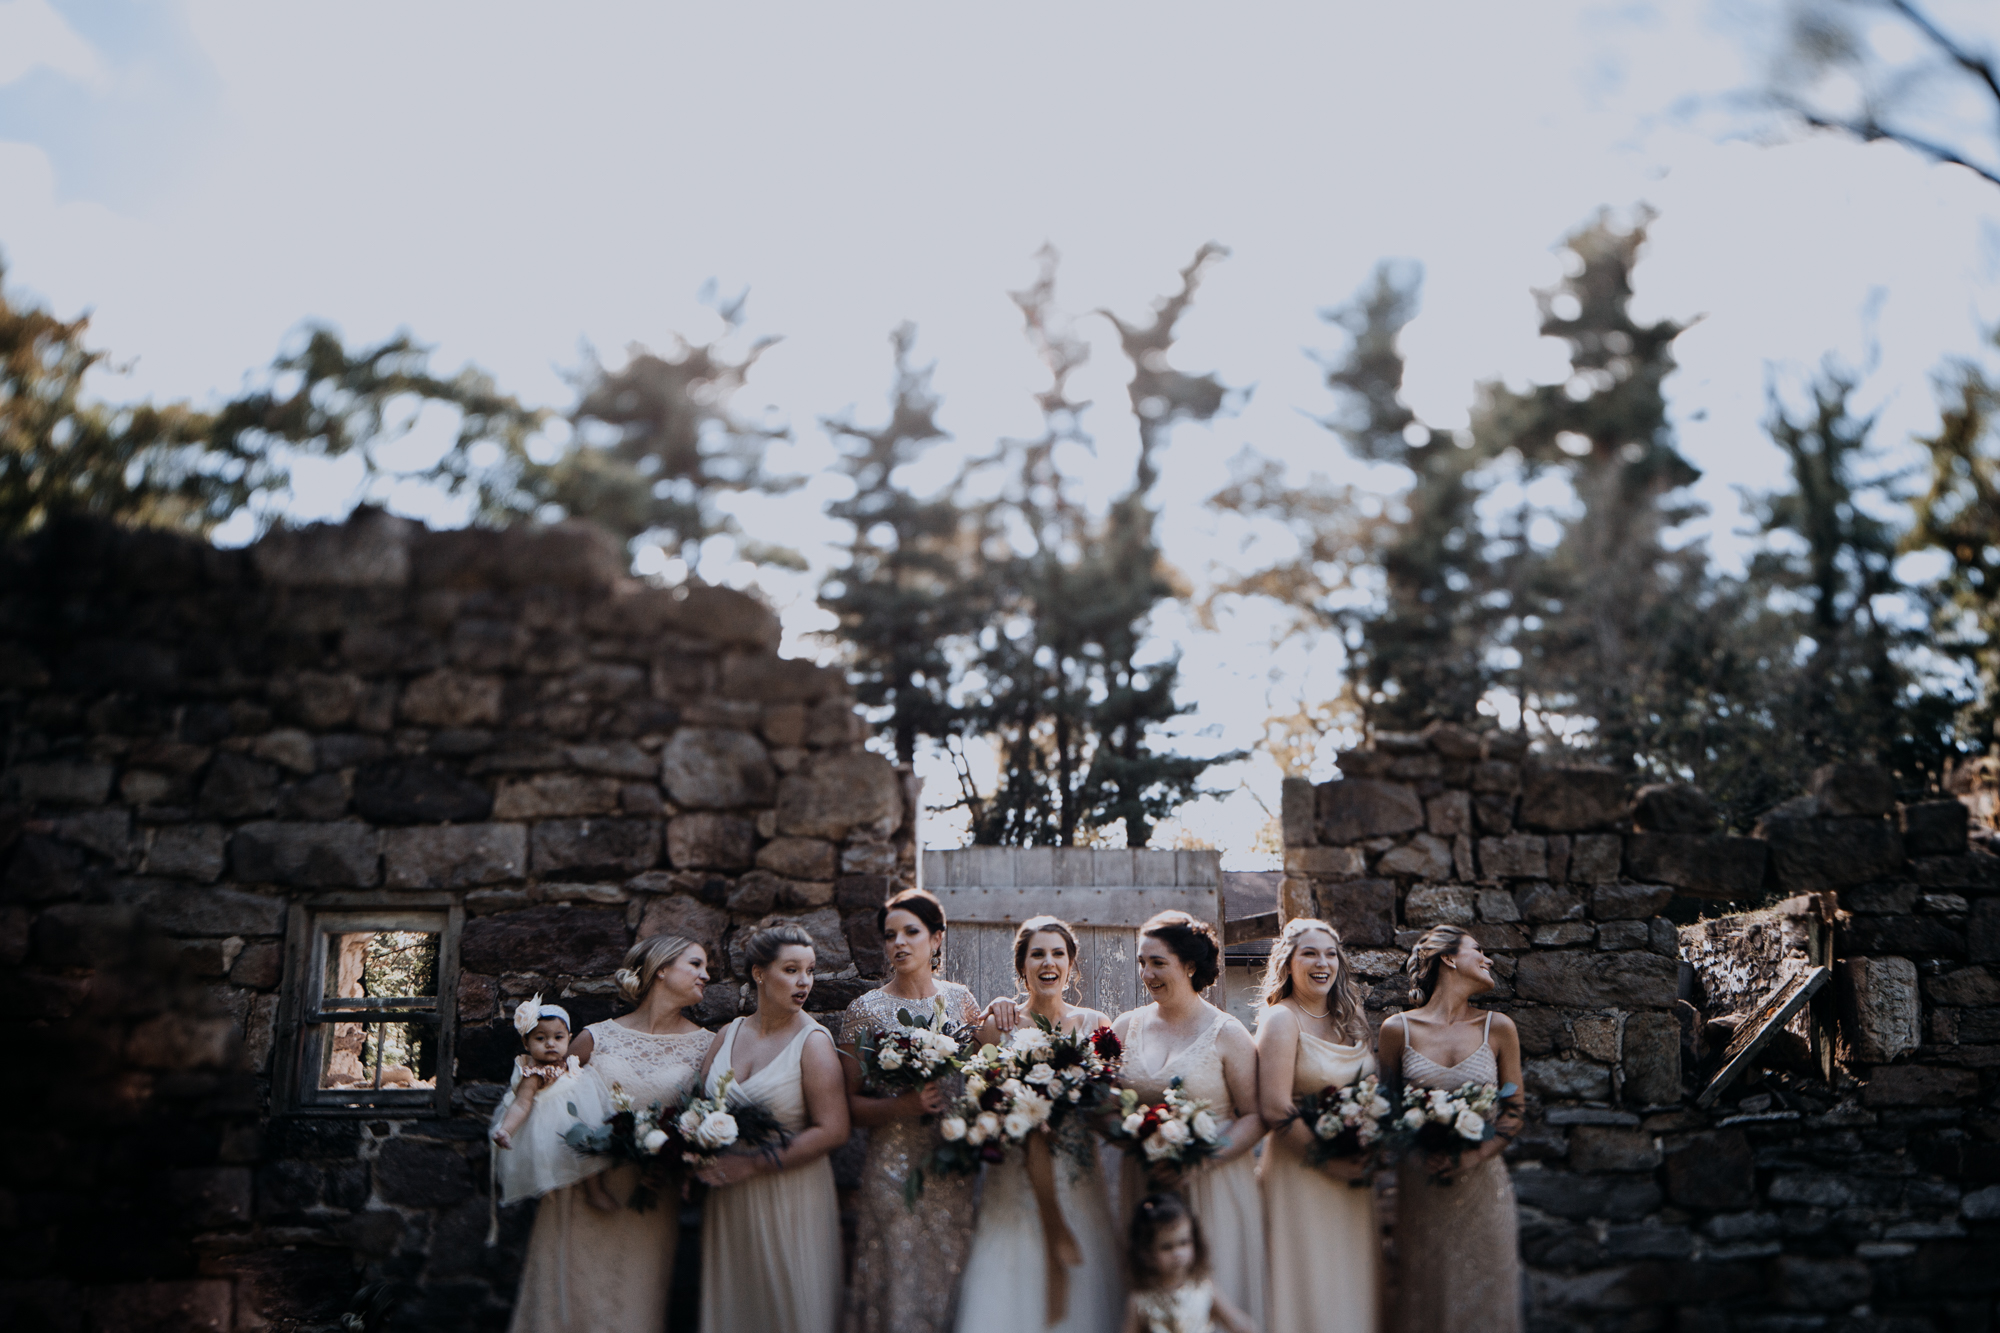 Cambria_Creative_Photographer_Boho_Wedding_Historic_Shady_Lane-1643.jpg